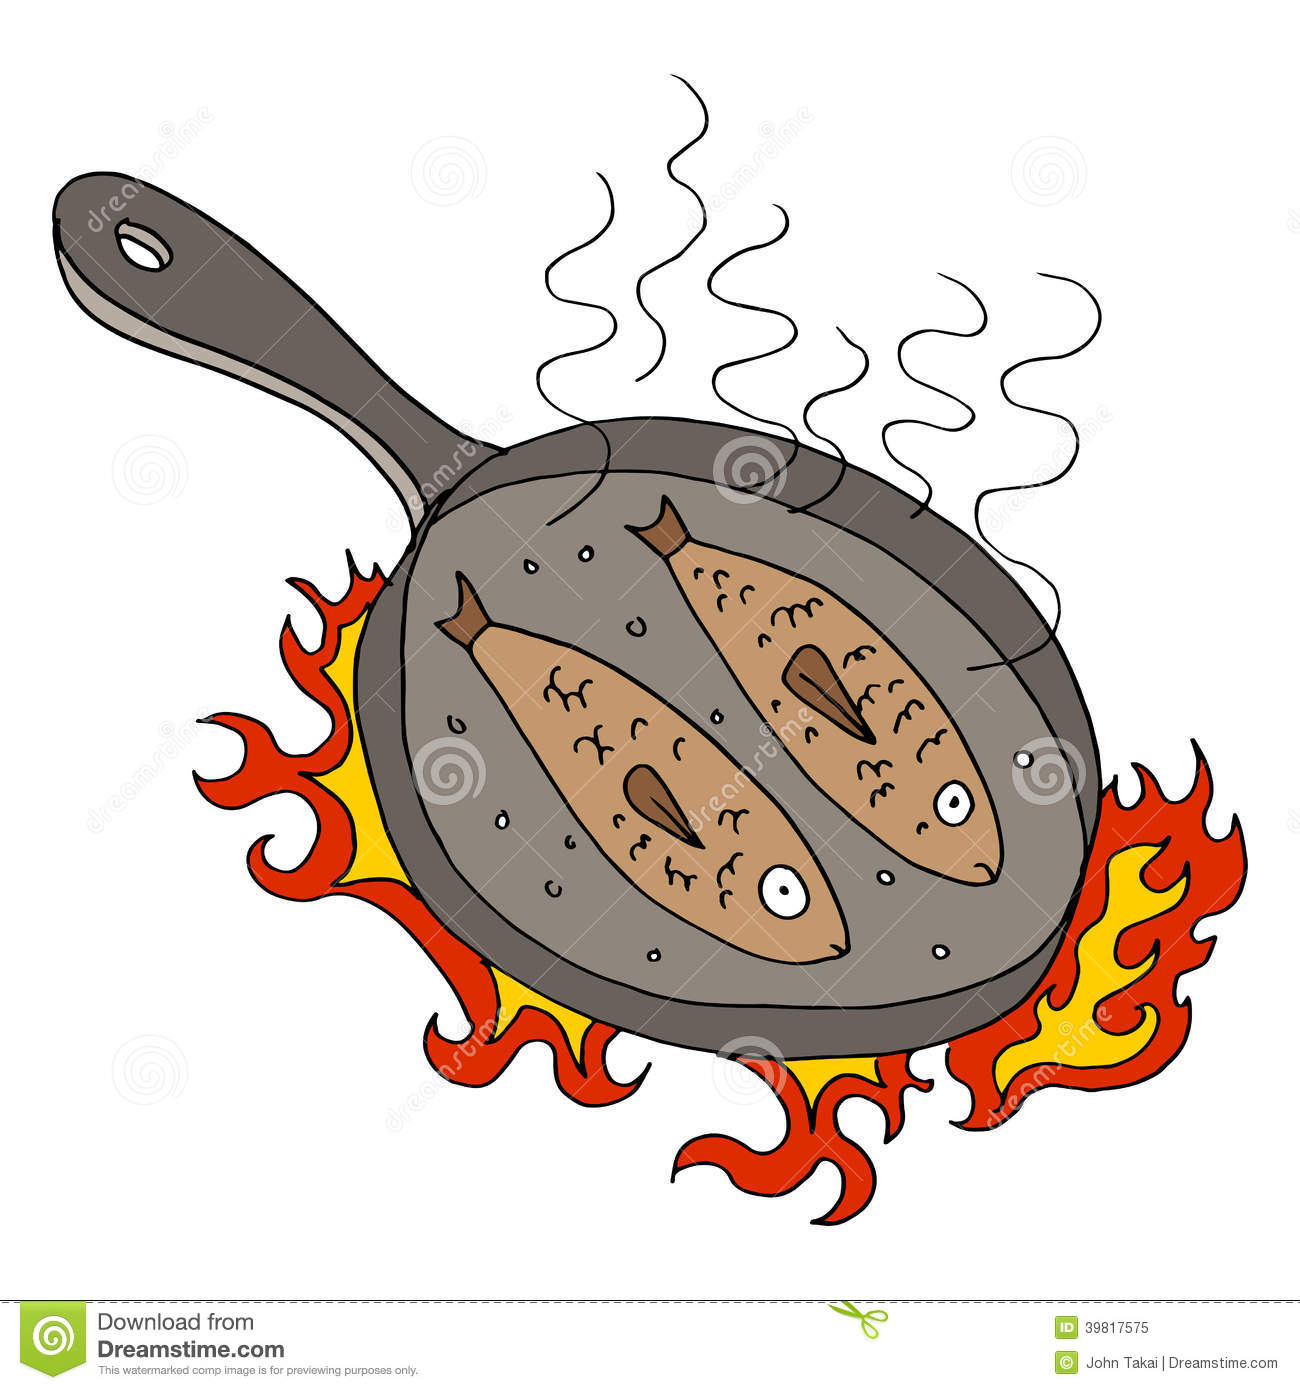 Clip Art Of Meat Products Cliparts furthermore Stock Illustration Vector Boiled Spiny Rock Lobster White Background Illustration Image67059605 also Royalty Free Stock Photo Fried Fish Image Being Image39817575 likewise Fish Fry Images besides Fried Chicken Clipart   24875. on cartoon cooked fish